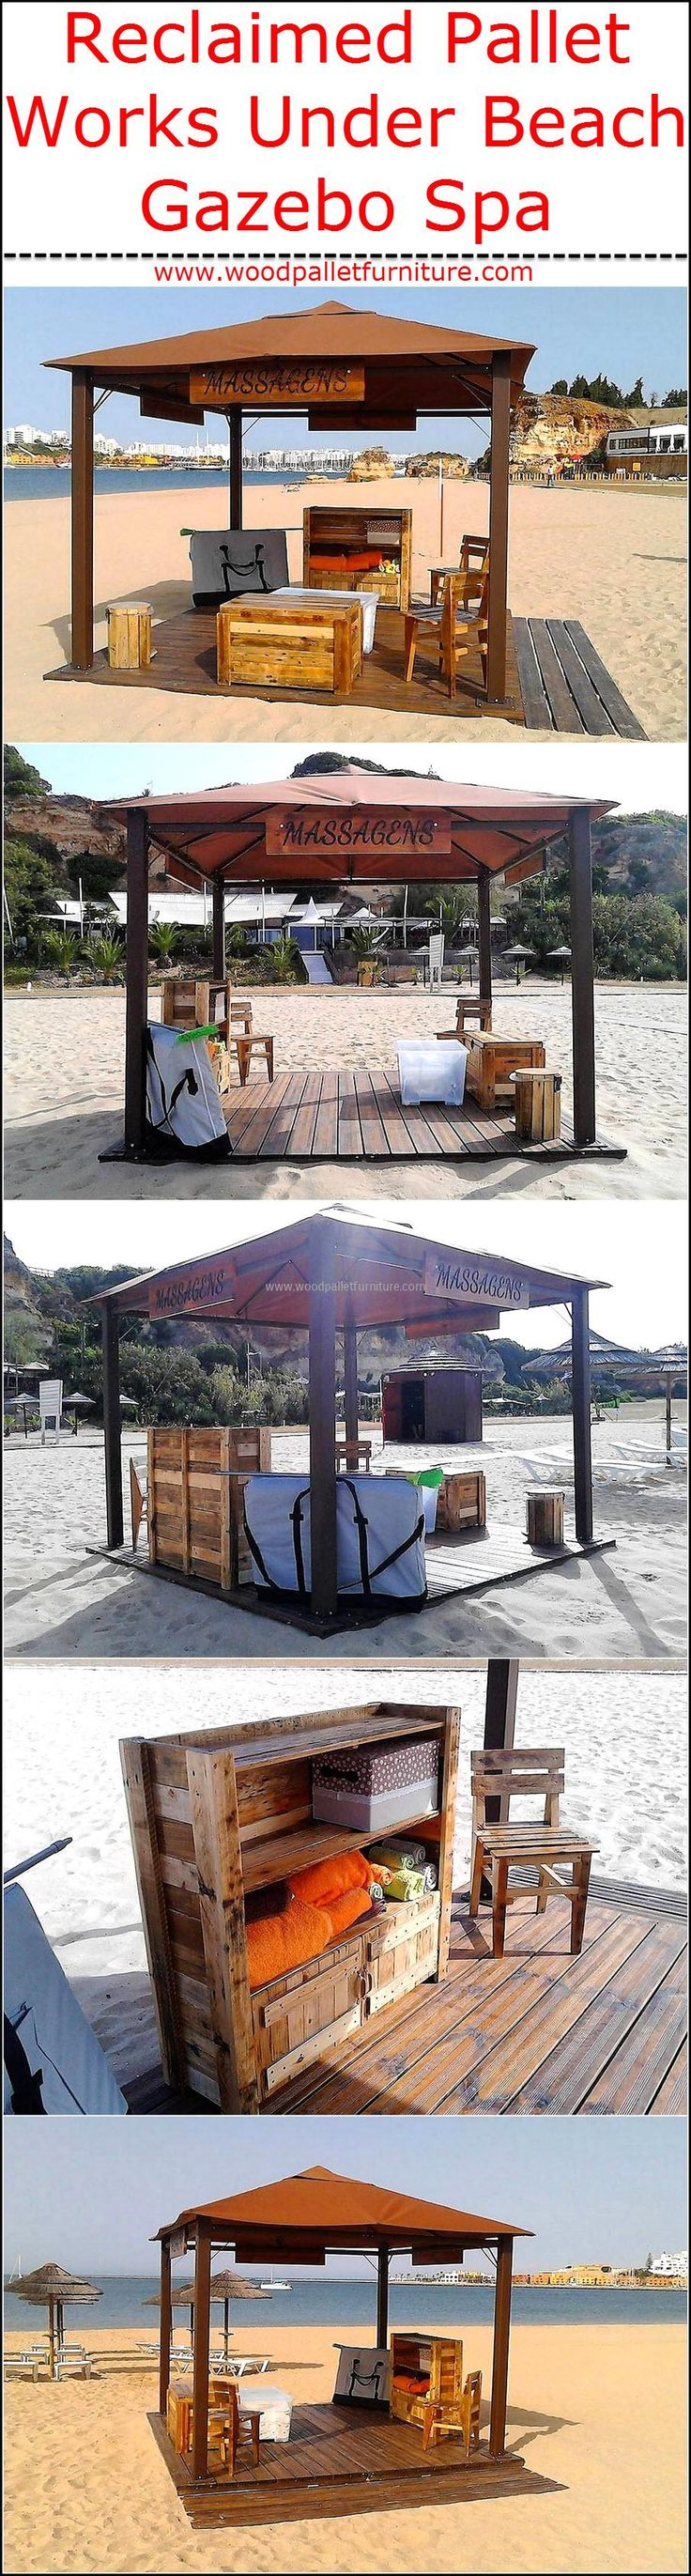 Some people don't prefer to reshape the wooden pallets into the furniture because they think that it looks weird and it doesn't add value to the home, which is not true as the wooden pallets are used by the professional service providers as well which you can see here. The images of reclaimed wood pallet works under beach Gazebo Spa are gathered by us for the individuals who are living with the misconception. Almost everything in the Spa is made up of wooden pallets and the pallets are…